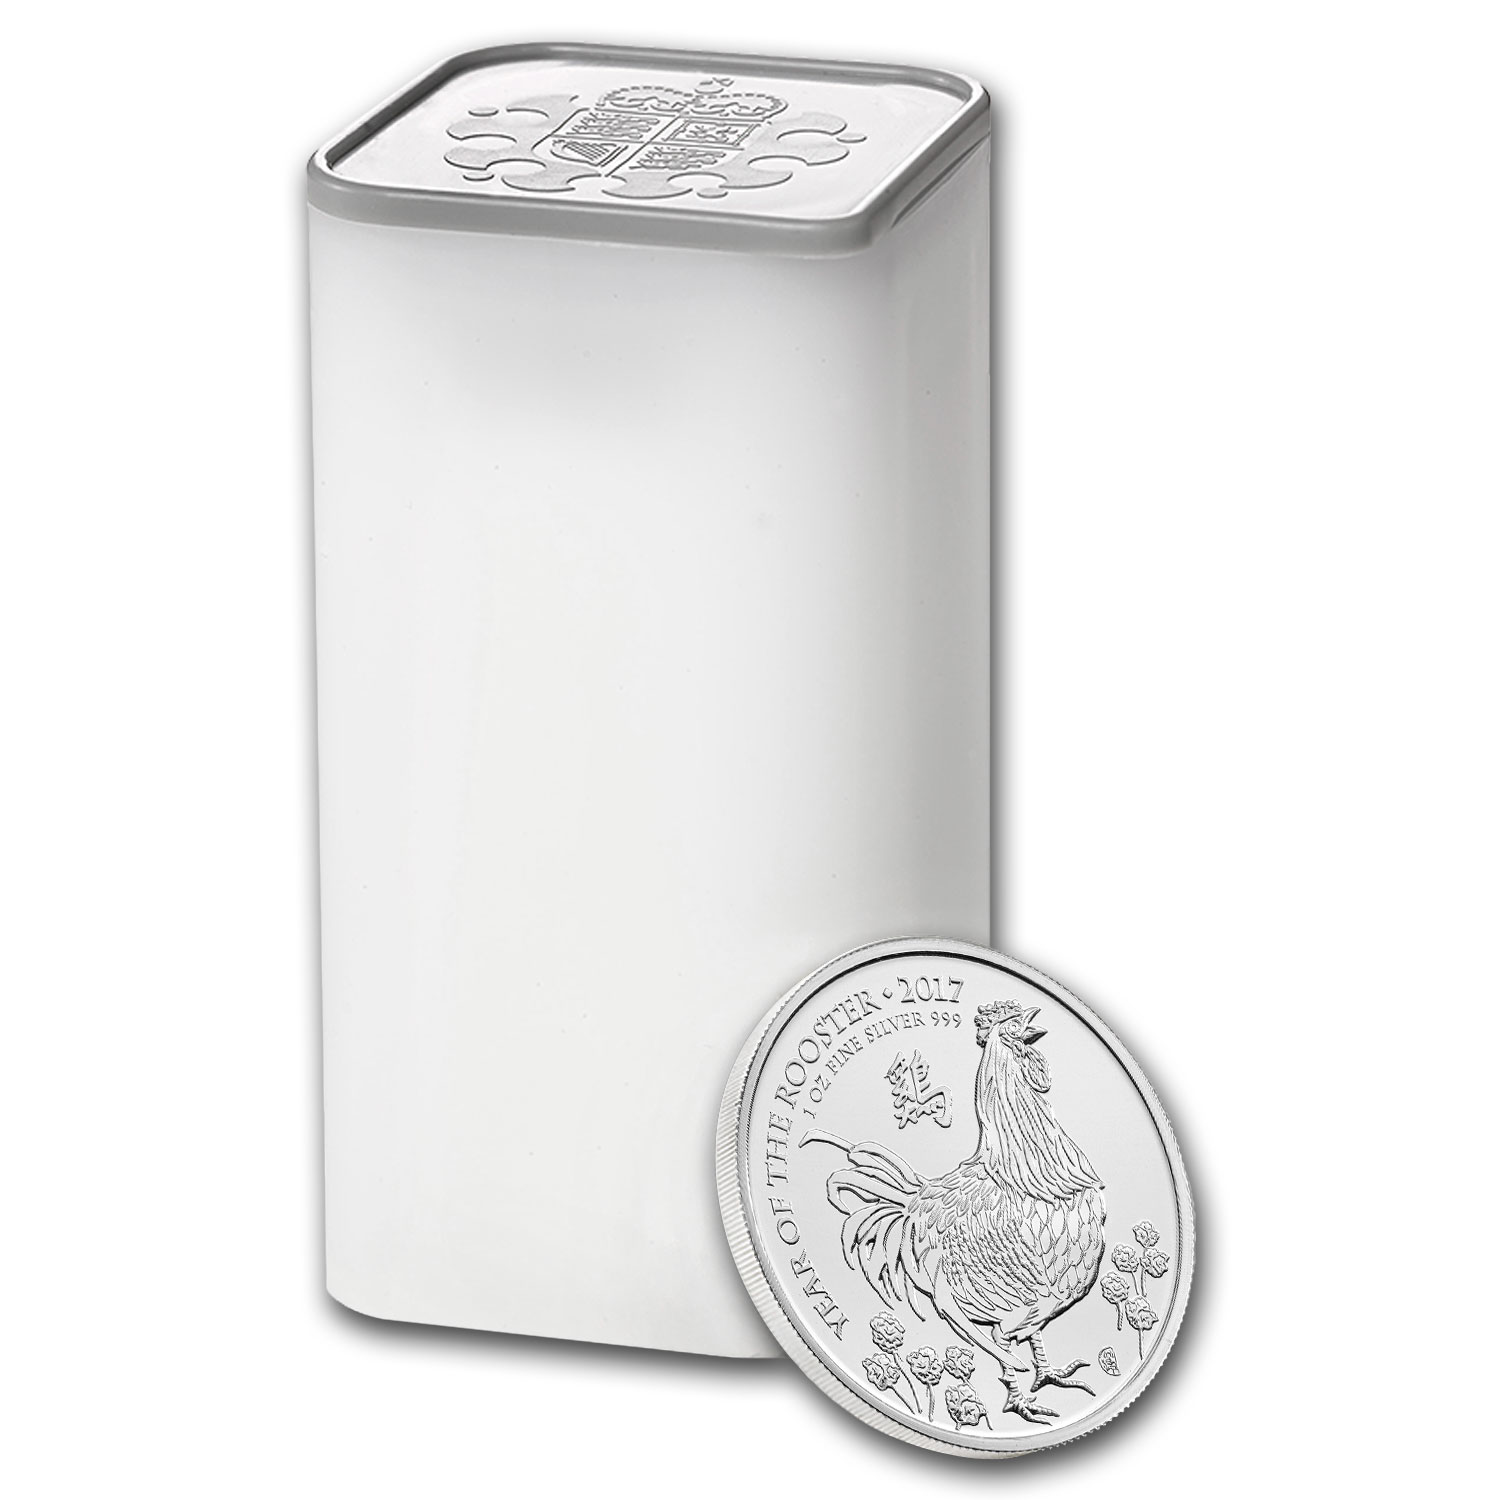 2017 GB 500-coin 1 oz Silver Year of the Rooster Monster Box BU